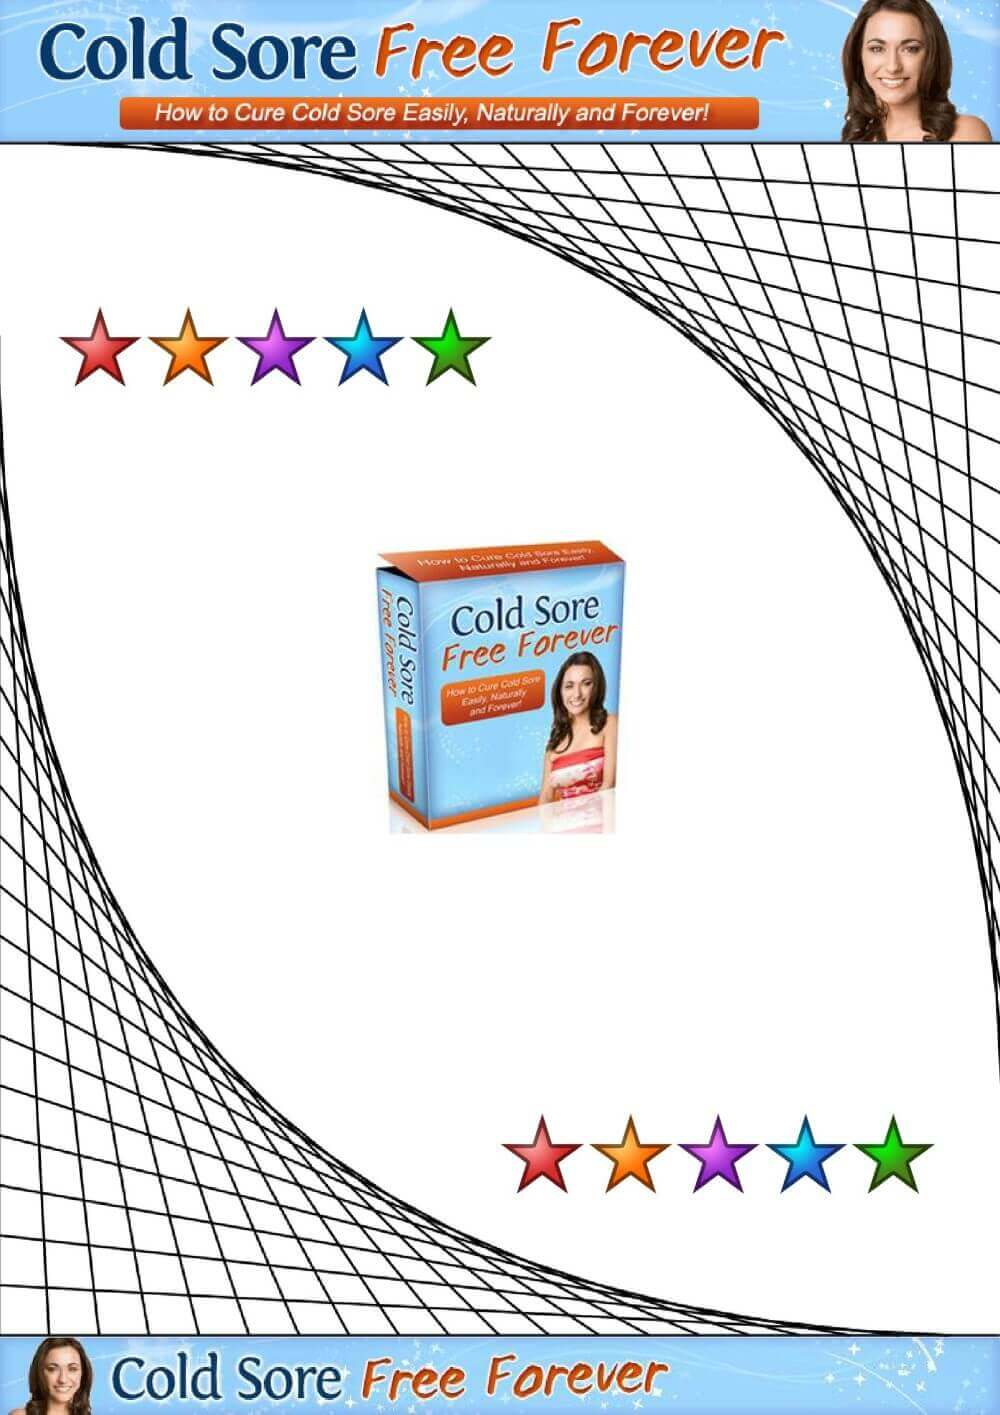 cold sore free forever review